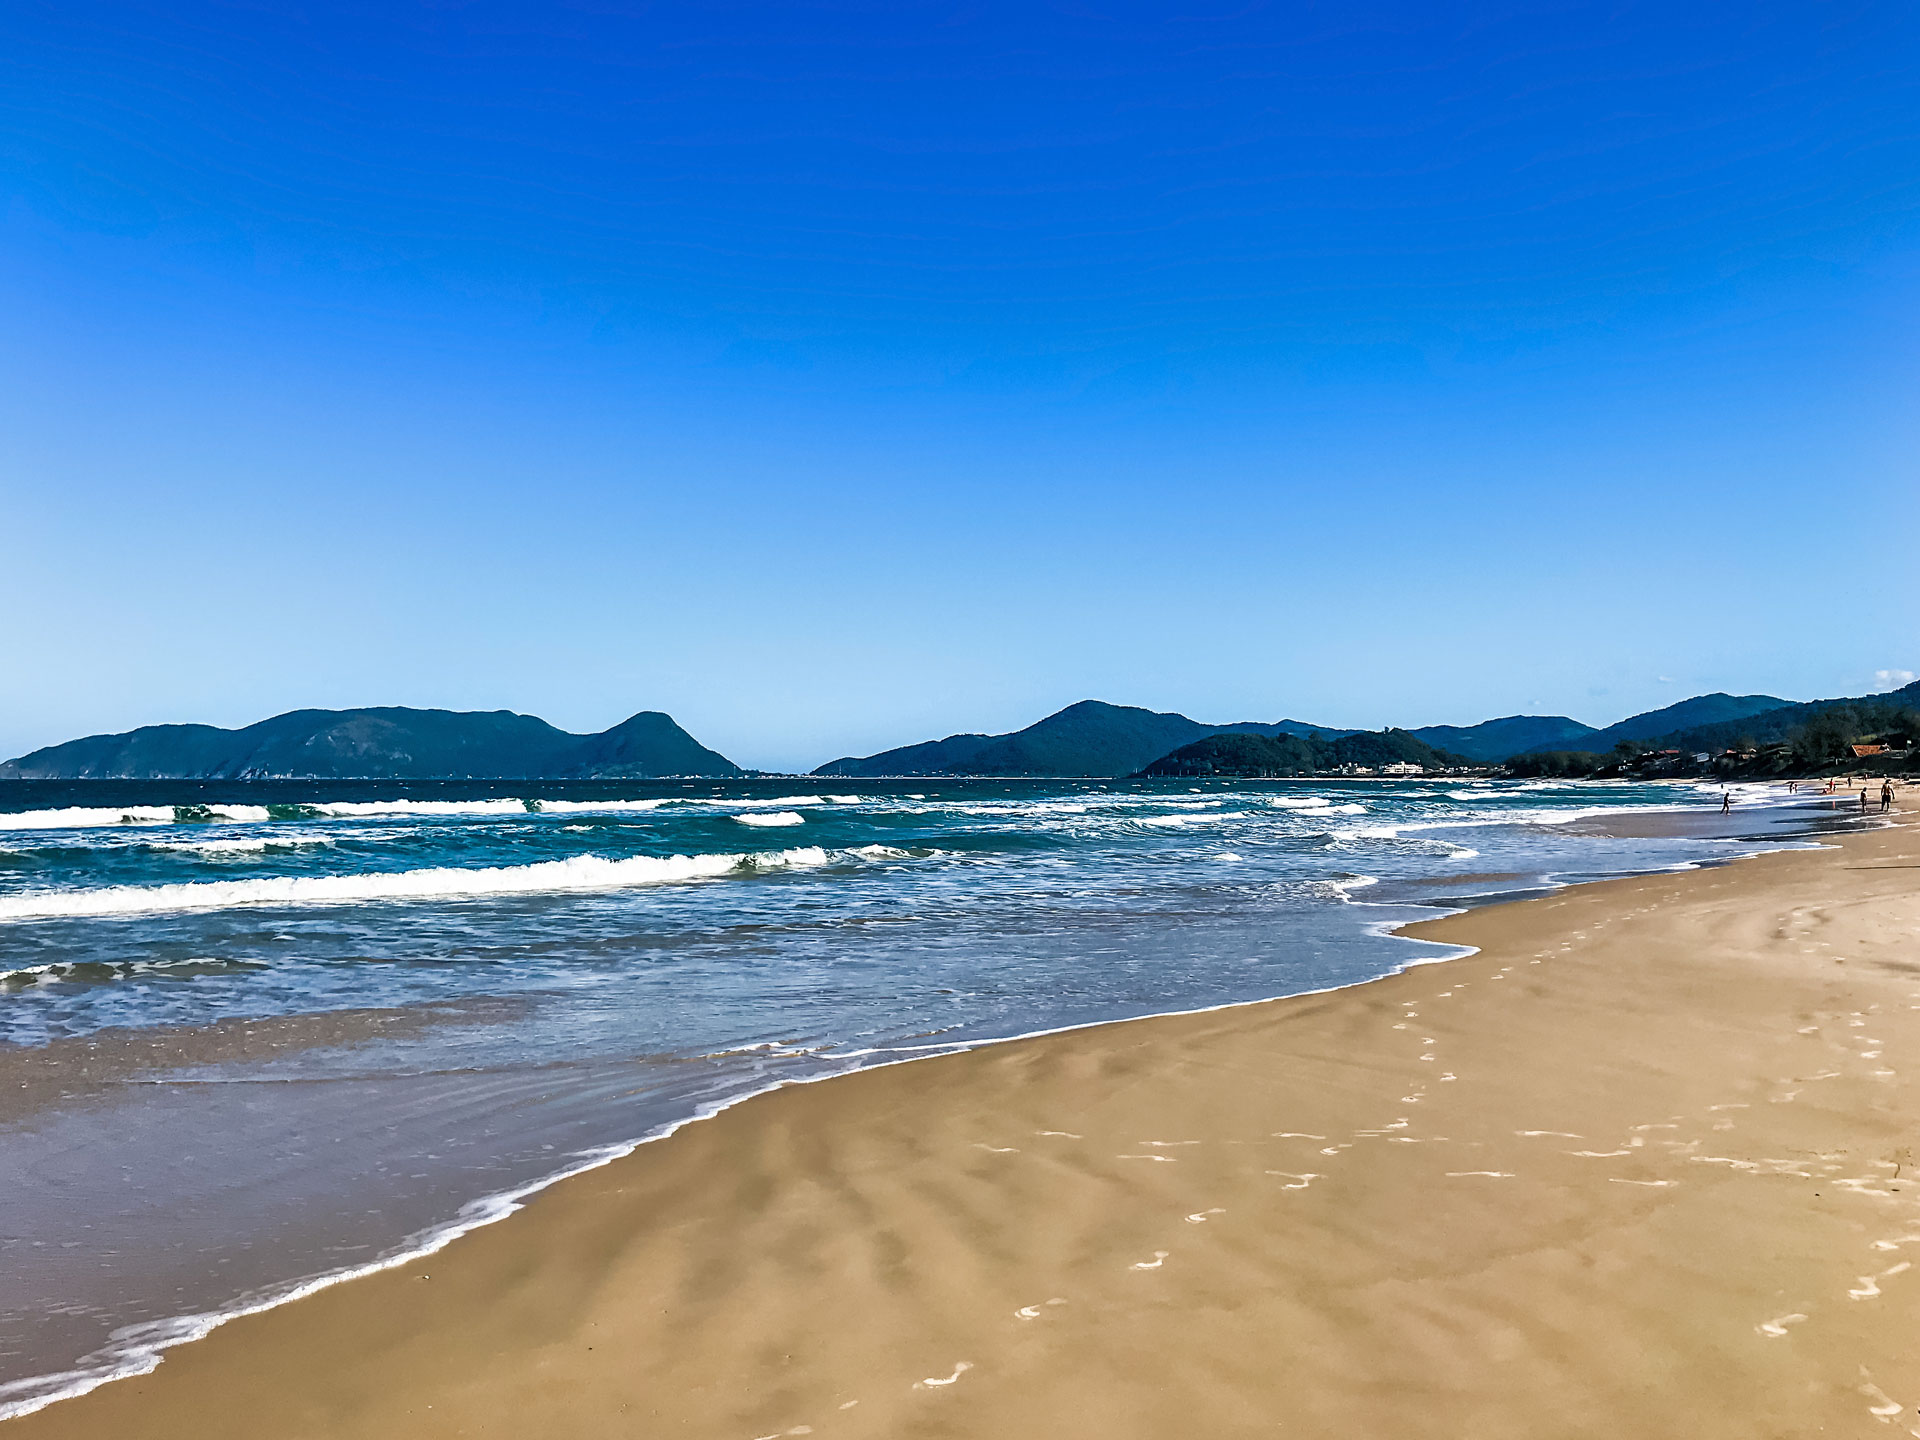 Campeche beach with mountains in background in Florianópolis, Brazil